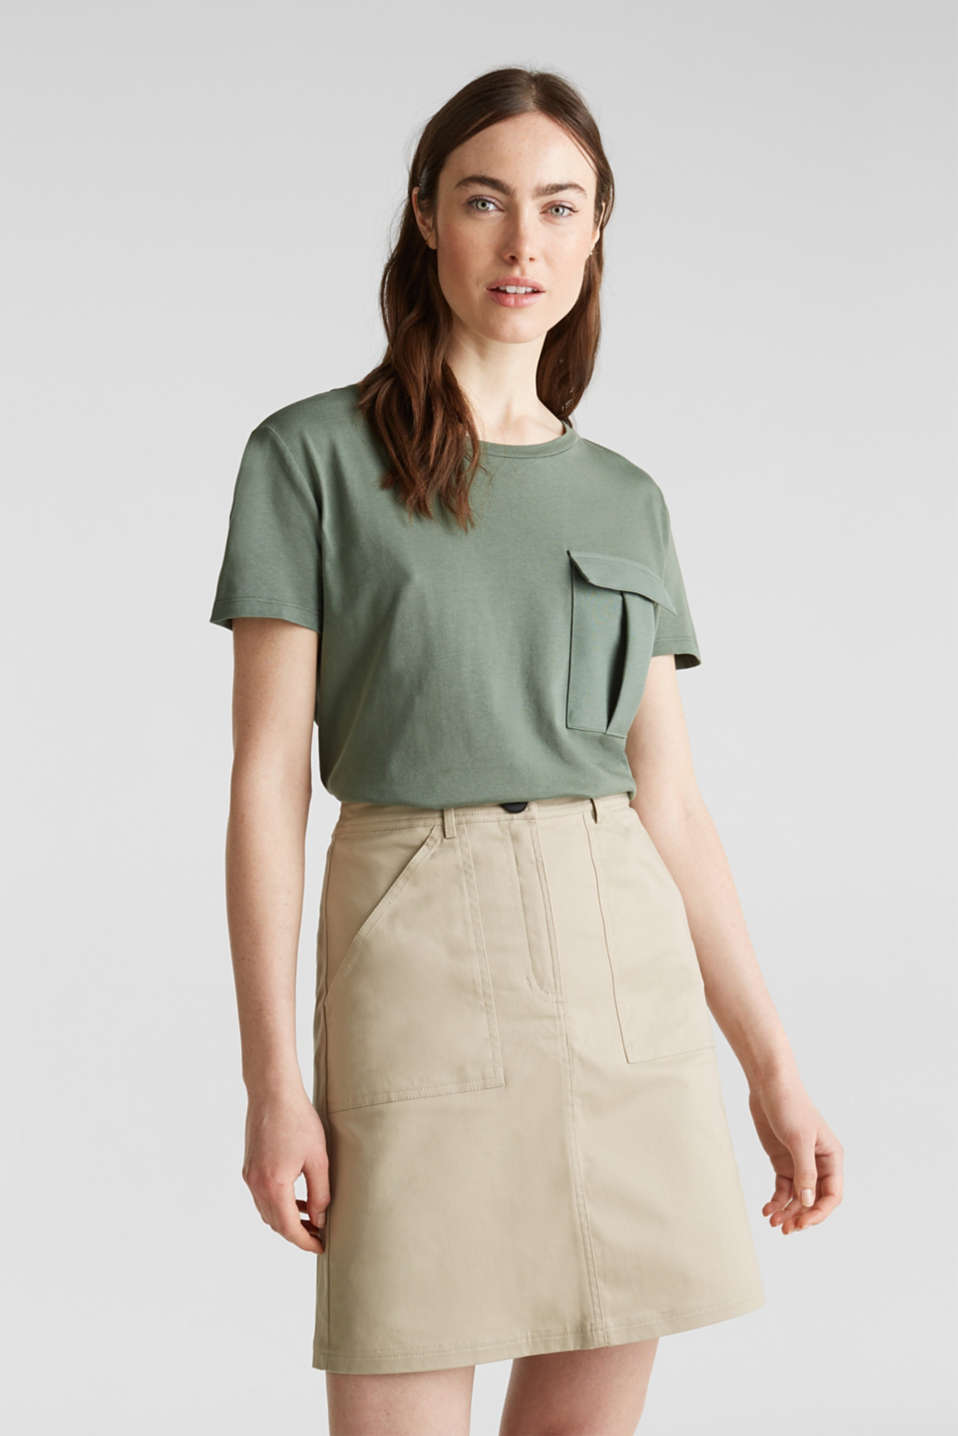 Esprit - Utility top with a breast pocket